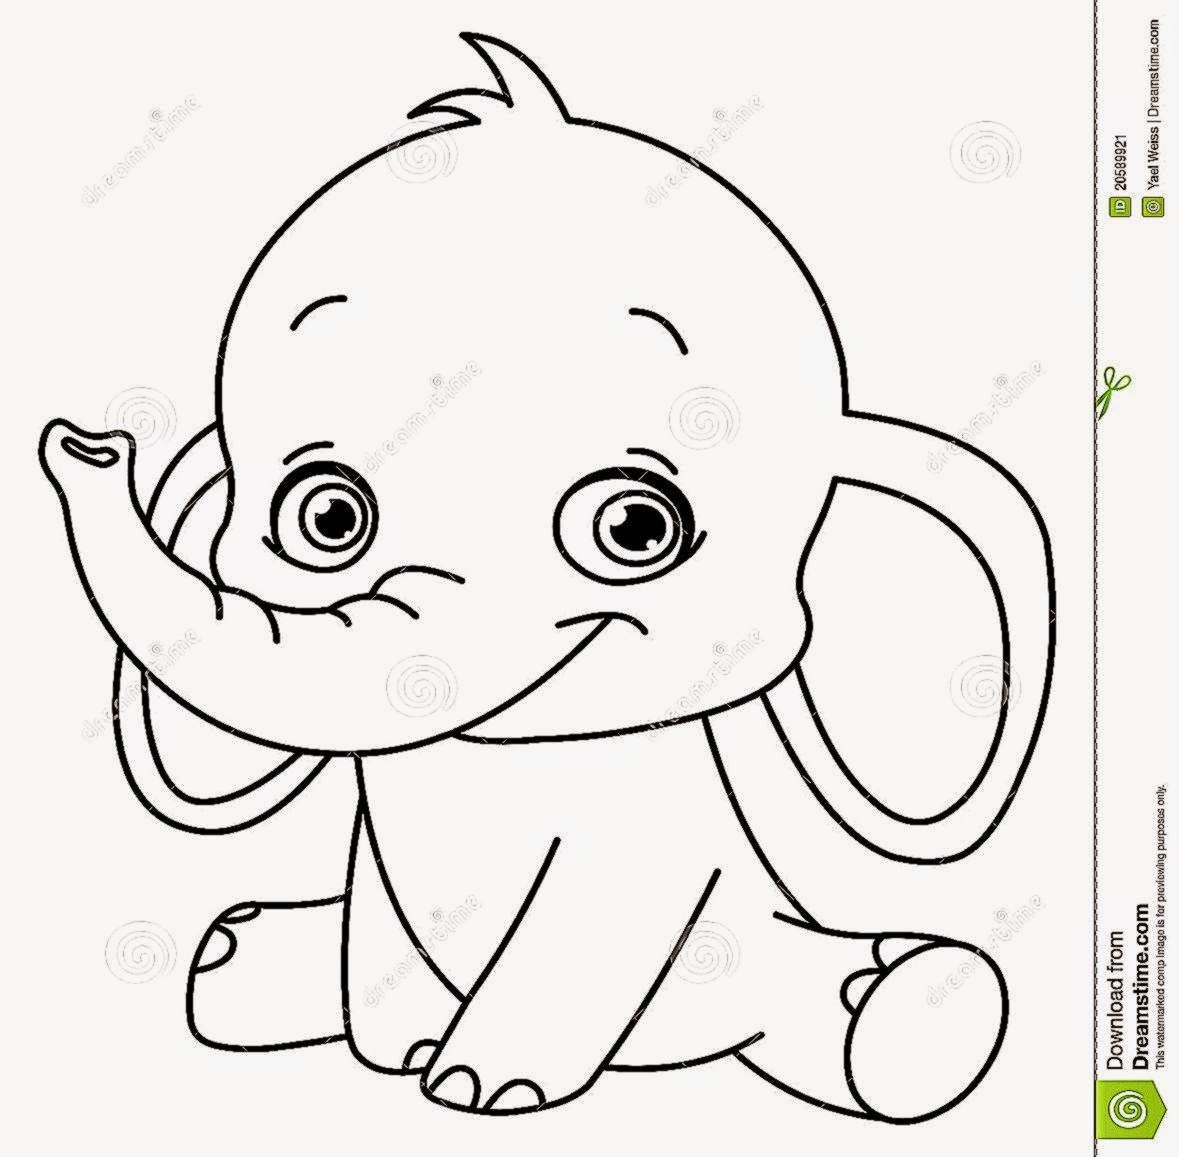 Easy Elephant Face Coloring Coloring Pages Printable Elephant Coloring Pages